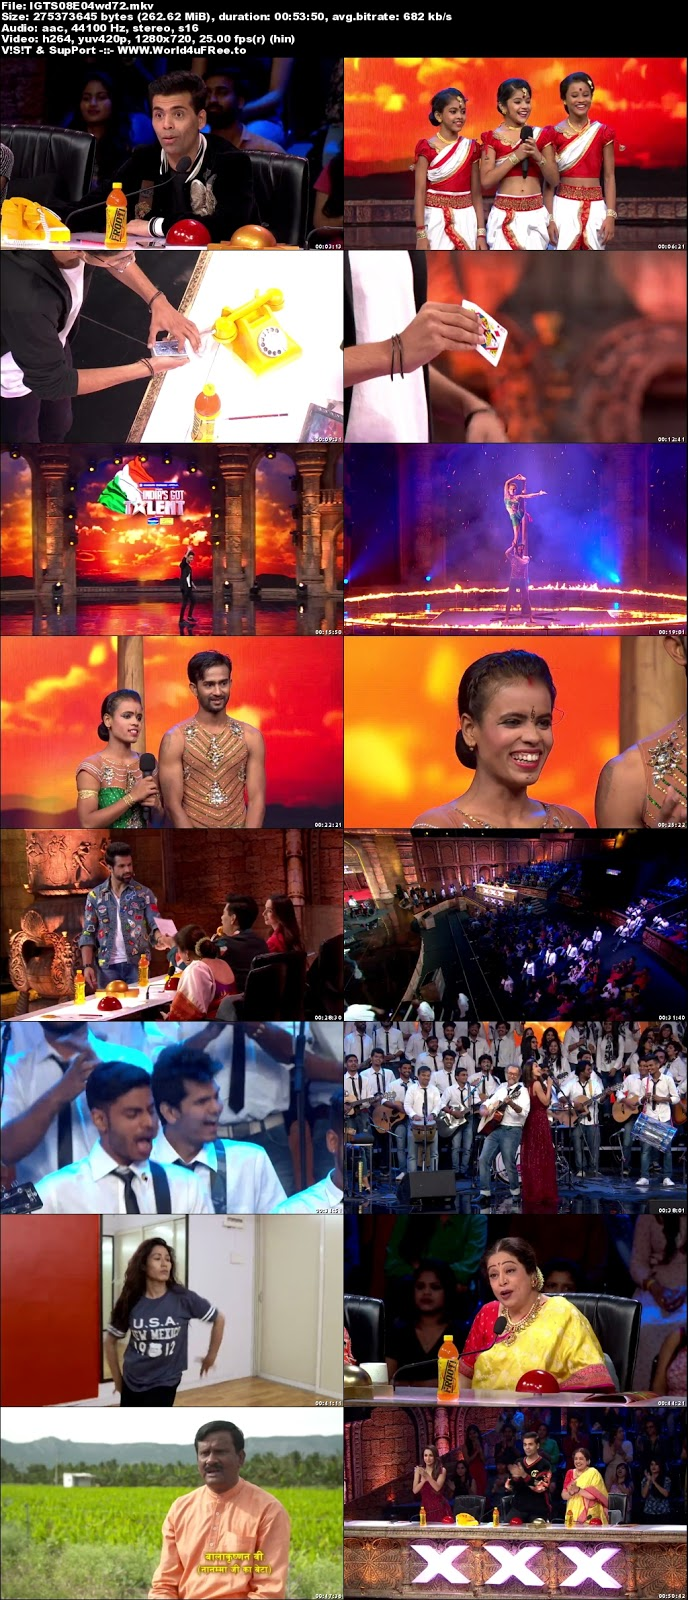 India's Got Talent S08 Episode 04 720p WEBRip 250mb x264 world4ufree.vip tv show India's Got Talent  Season 8 Star Plus tv show HD 720p free download or watch online at world4ufree.vip